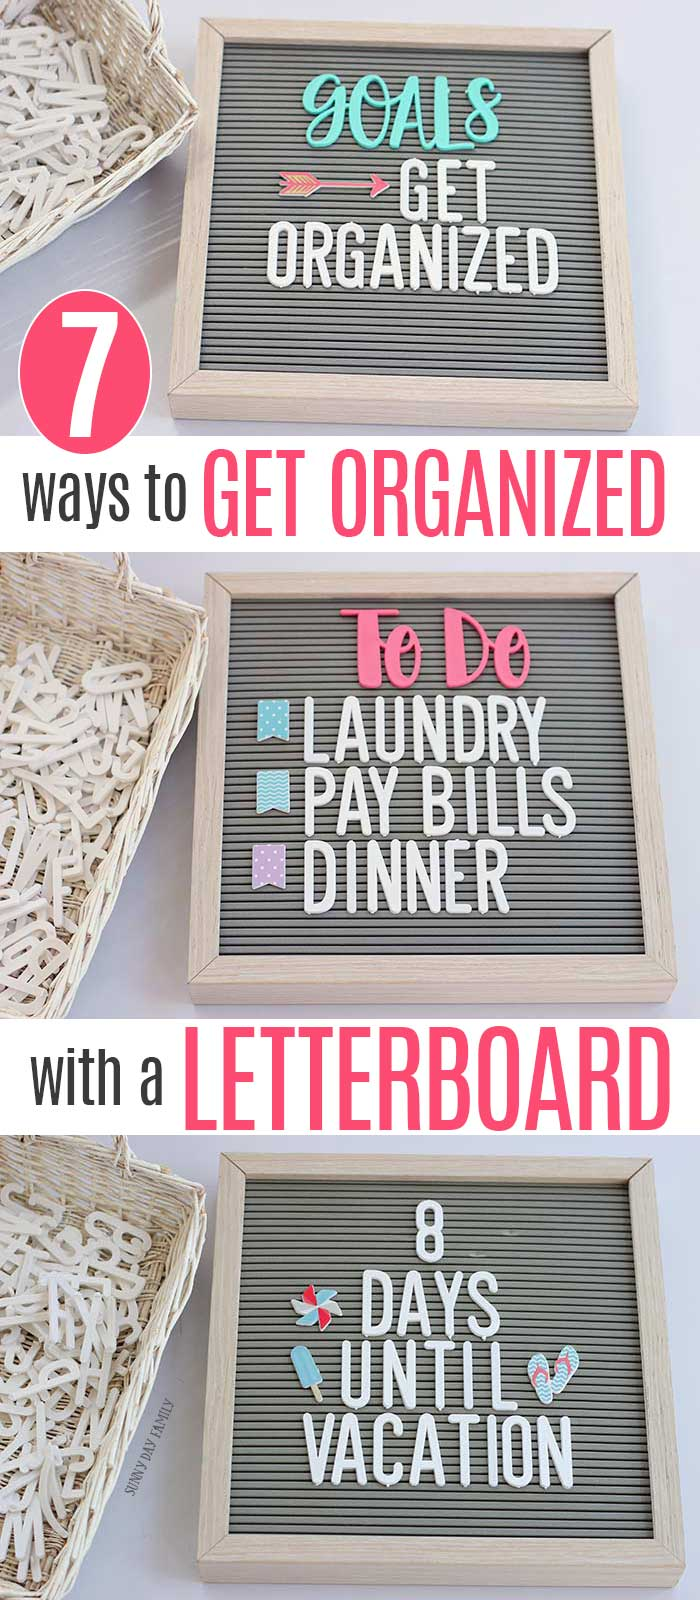 Use a letter board to get organized. These ideas are GENIUS! Super easy ways to use a letterboard for home organizing. #letterboard #organizing #homedecor #organize #homeideas